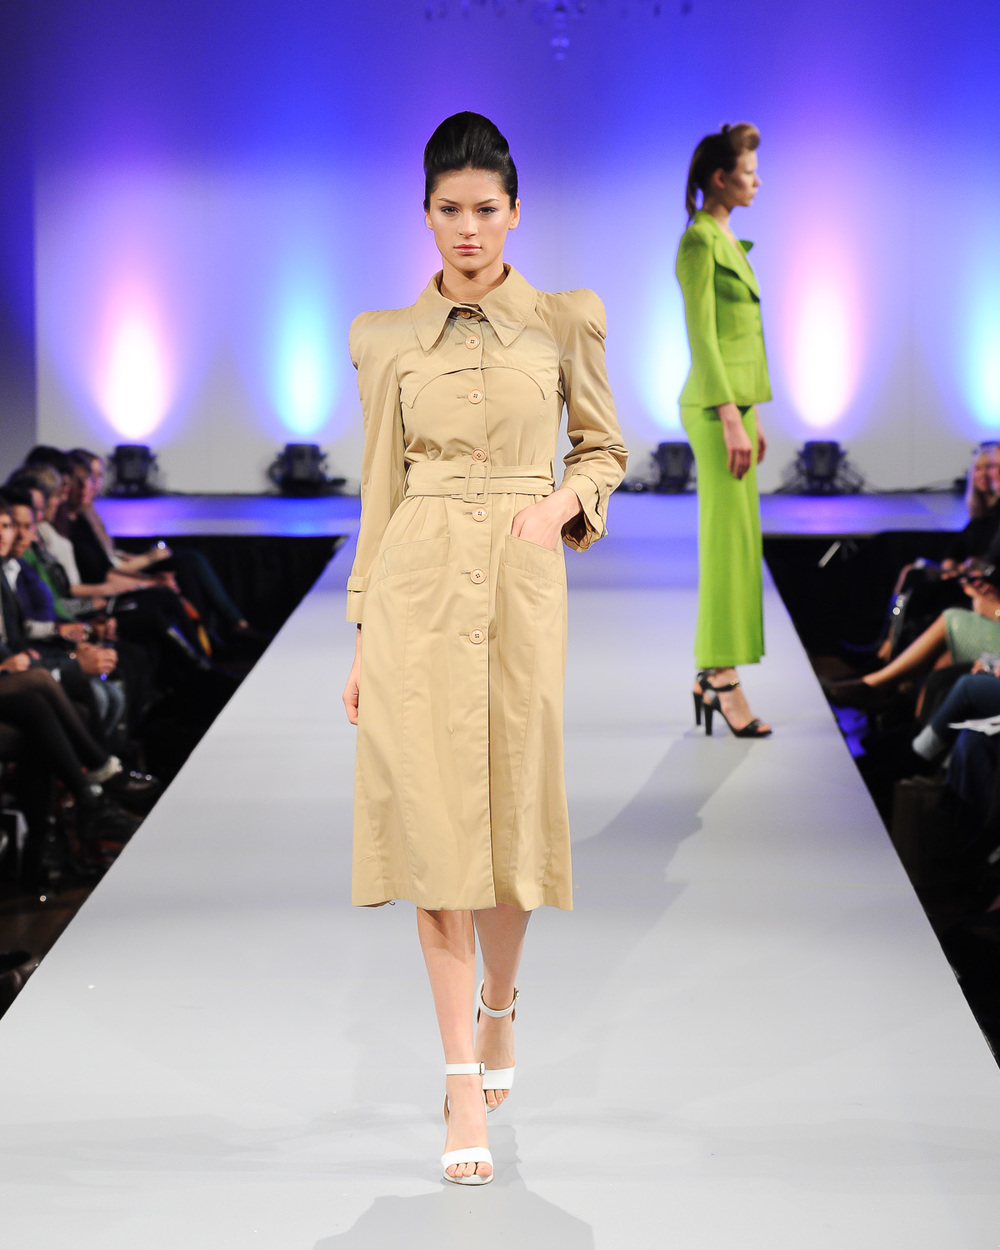 Bath-in-fashion-BIBA-Fashion-Show-7.jpg